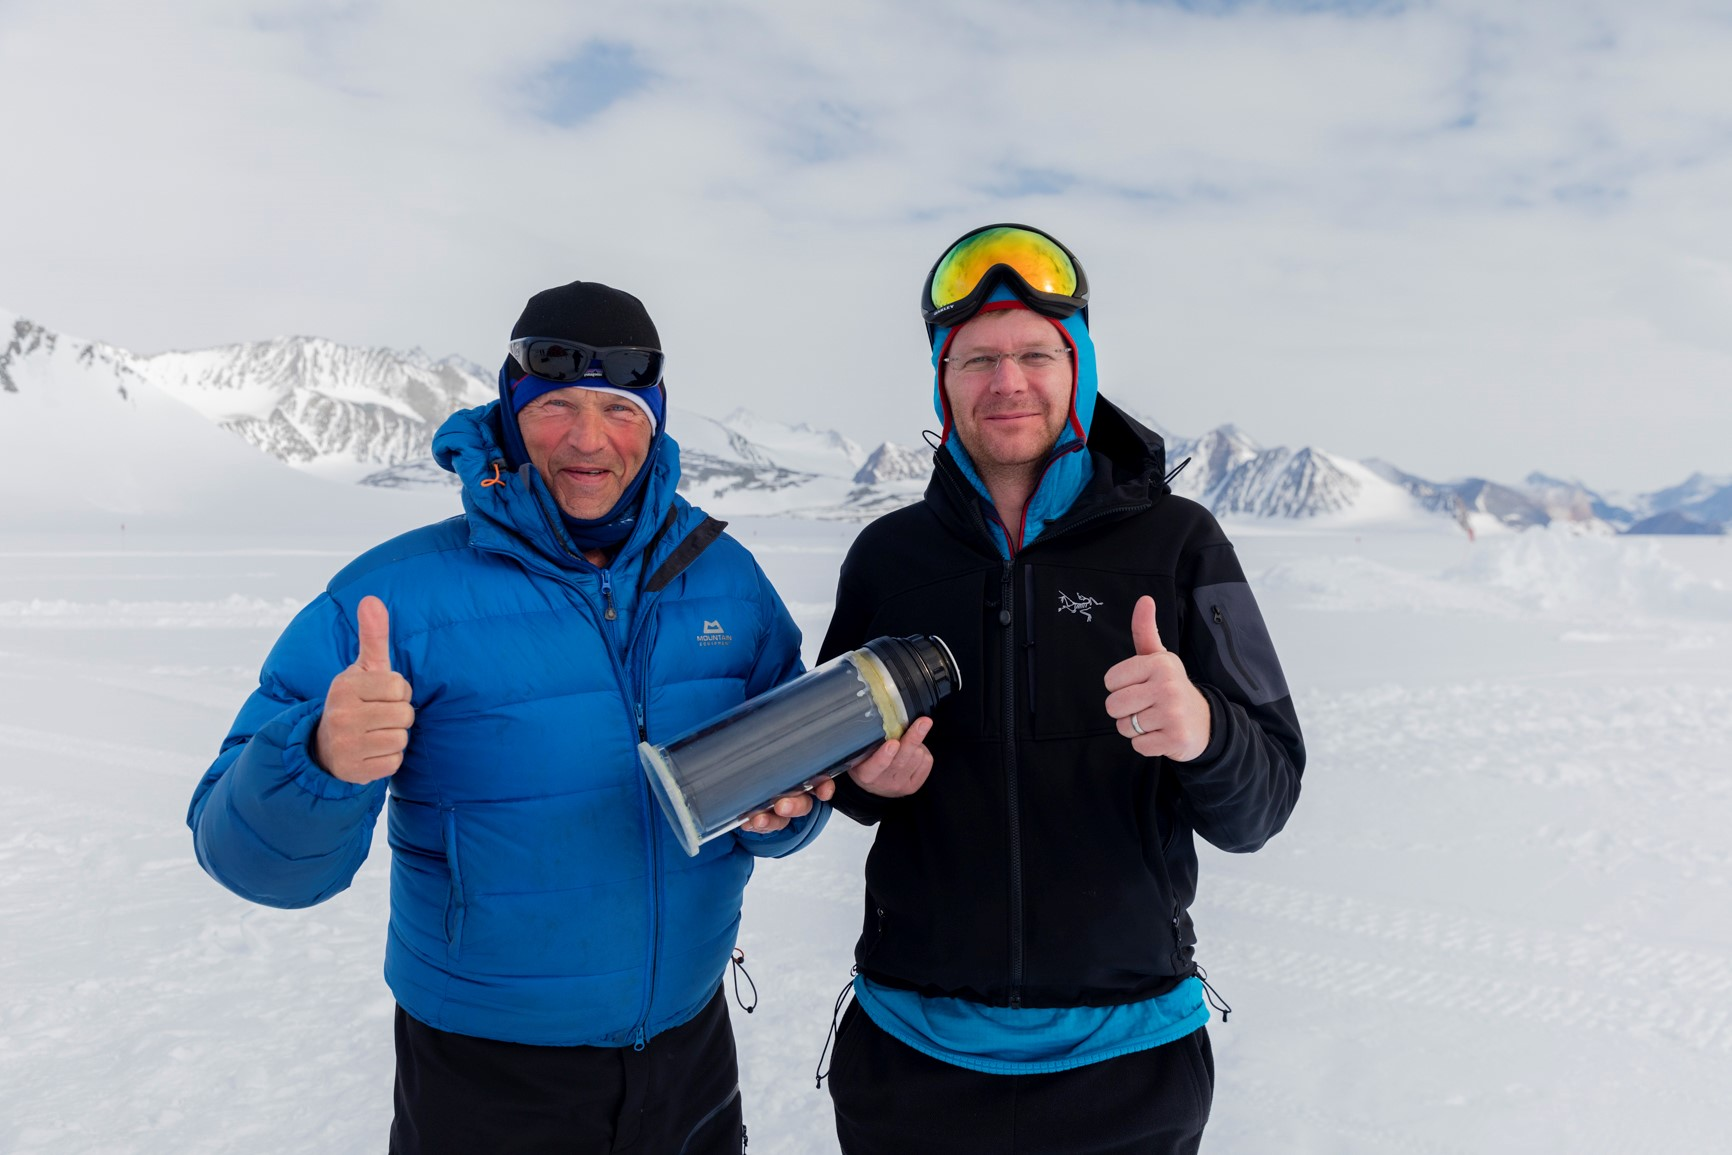 Robert Swan and Declan Flanagan with one of the prototype melters during the expedition to Union Glacier in 2016.